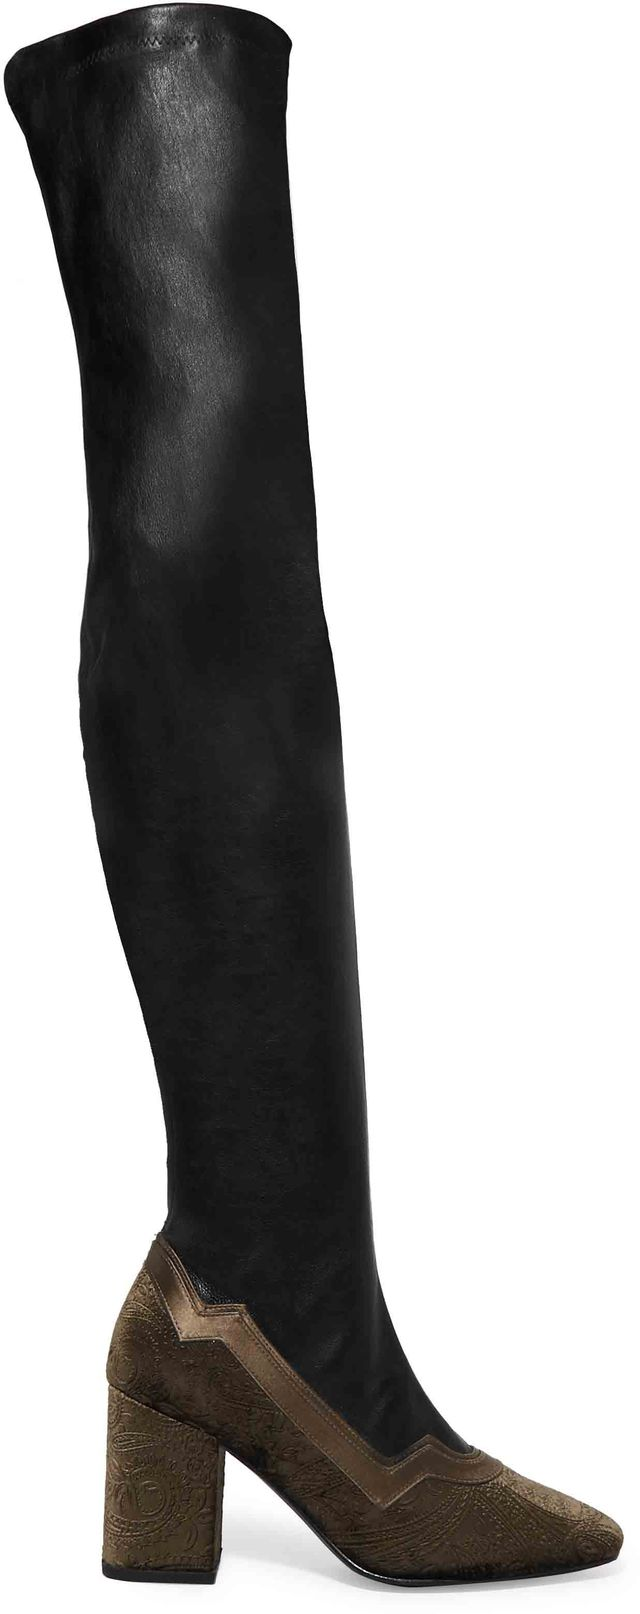 MR by Man Repeller The I'm Really Here to Party Embossed Velvet-Trimmed Leather Over-the-Knee Boots